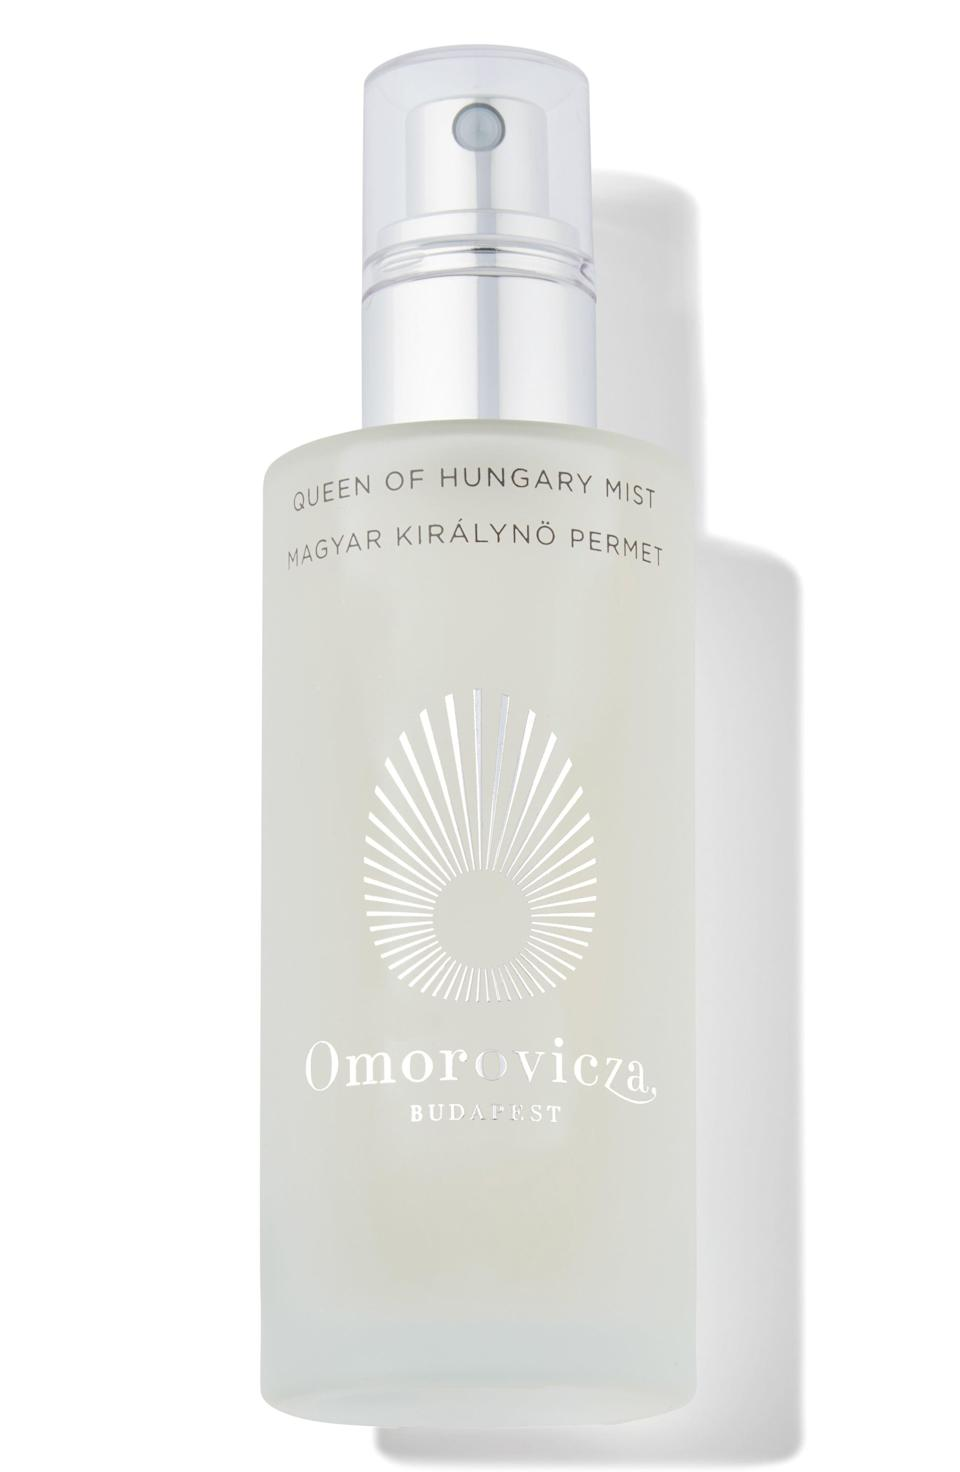 """<p><strong>Omorovicza</strong></p><p>nordstrom.com</p><p><strong>$95.00</strong></p><p><a href=""""https://go.redirectingat.com?id=74968X1596630&url=https%3A%2F%2Fwww.nordstrom.com%2Fs%2Fomorovicza-queen-of-hungary-mist%2F3513180&sref=https%3A%2F%2Fwww.townandcountrymag.com%2Fstyle%2Fbeauty-products%2Fg33634970%2Fbest-face-mists%2F"""" rel=""""nofollow noopener"""" target=""""_blank"""" data-ylk=""""slk:Shop Now"""" class=""""link rapid-noclick-resp"""">Shop Now</a></p><p>If you want an indulgent mist, look no further than Omorovicza. The mix of orange blossom, rose, and sage water, with apple pectin ensures skin is hydrated to the max, but the smell will have you feeling like royalty. </p>"""